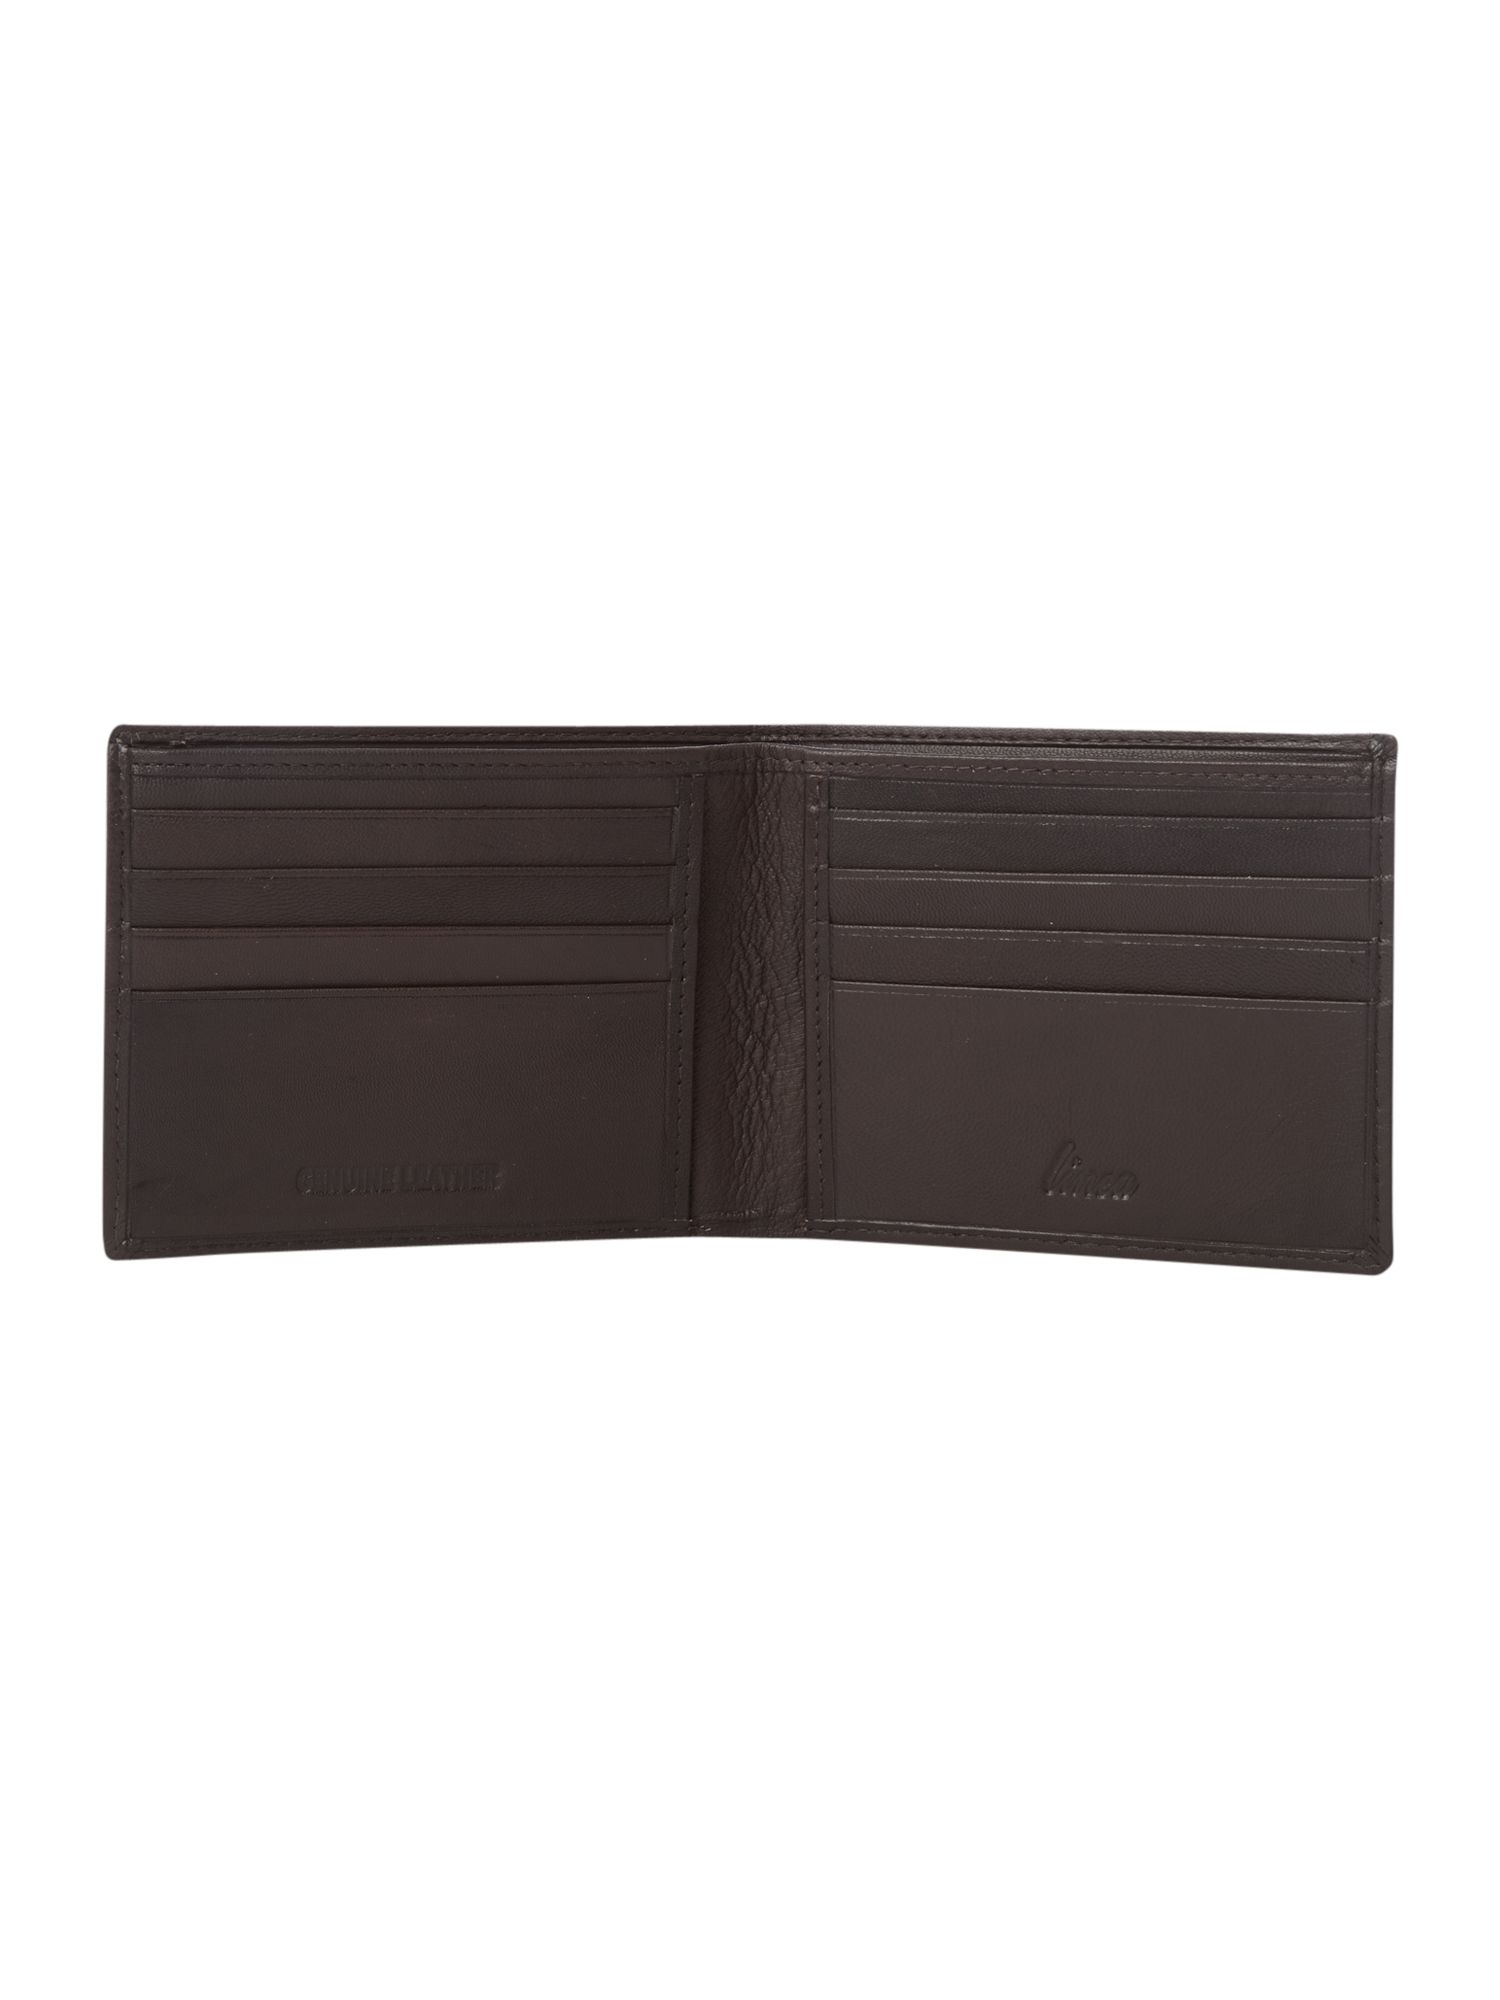 Smart billfold wallet